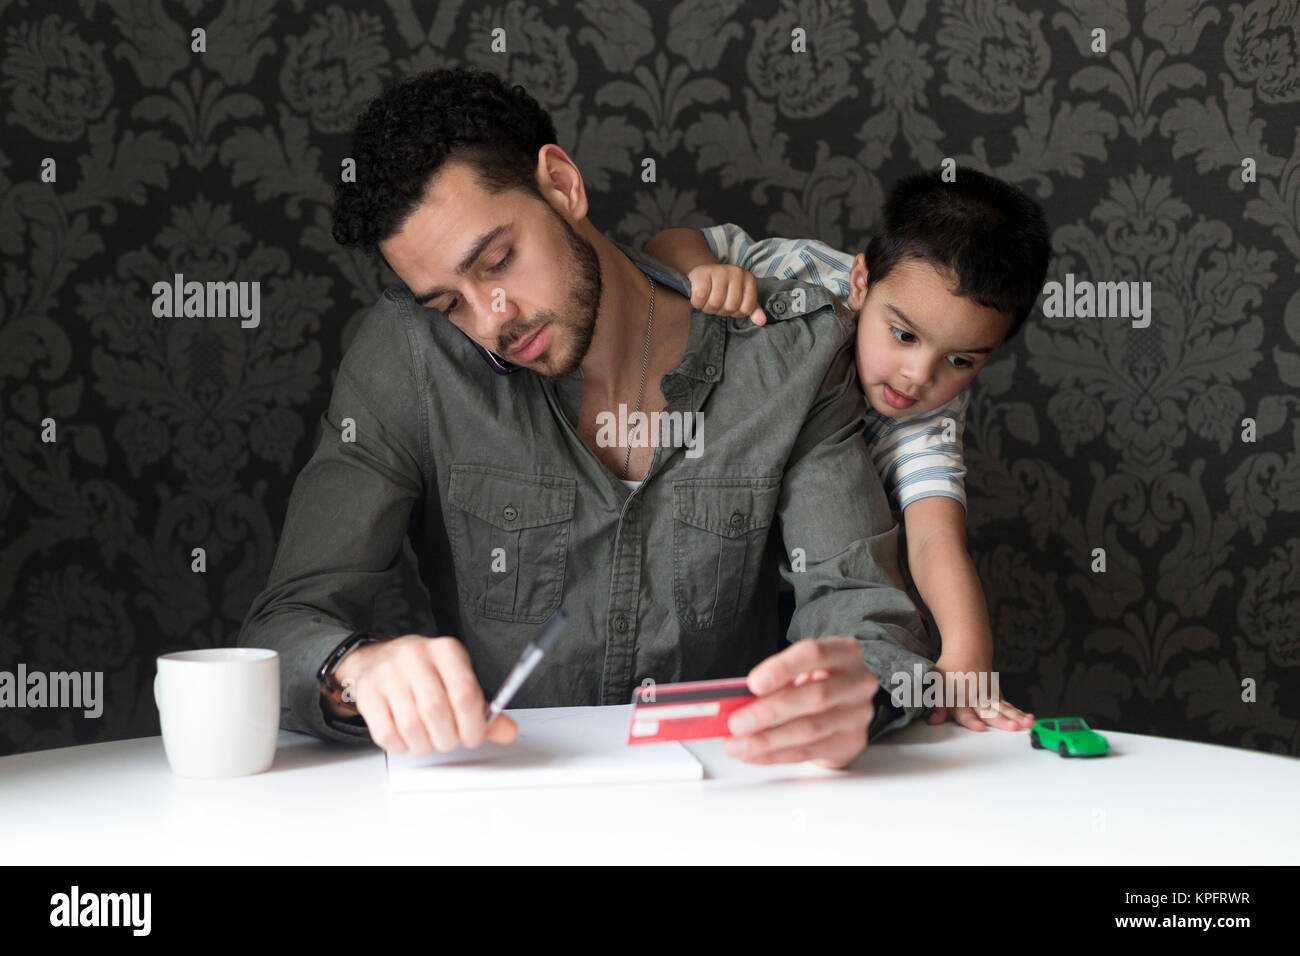 African American Dad And Son Shopping Stock Photos & African